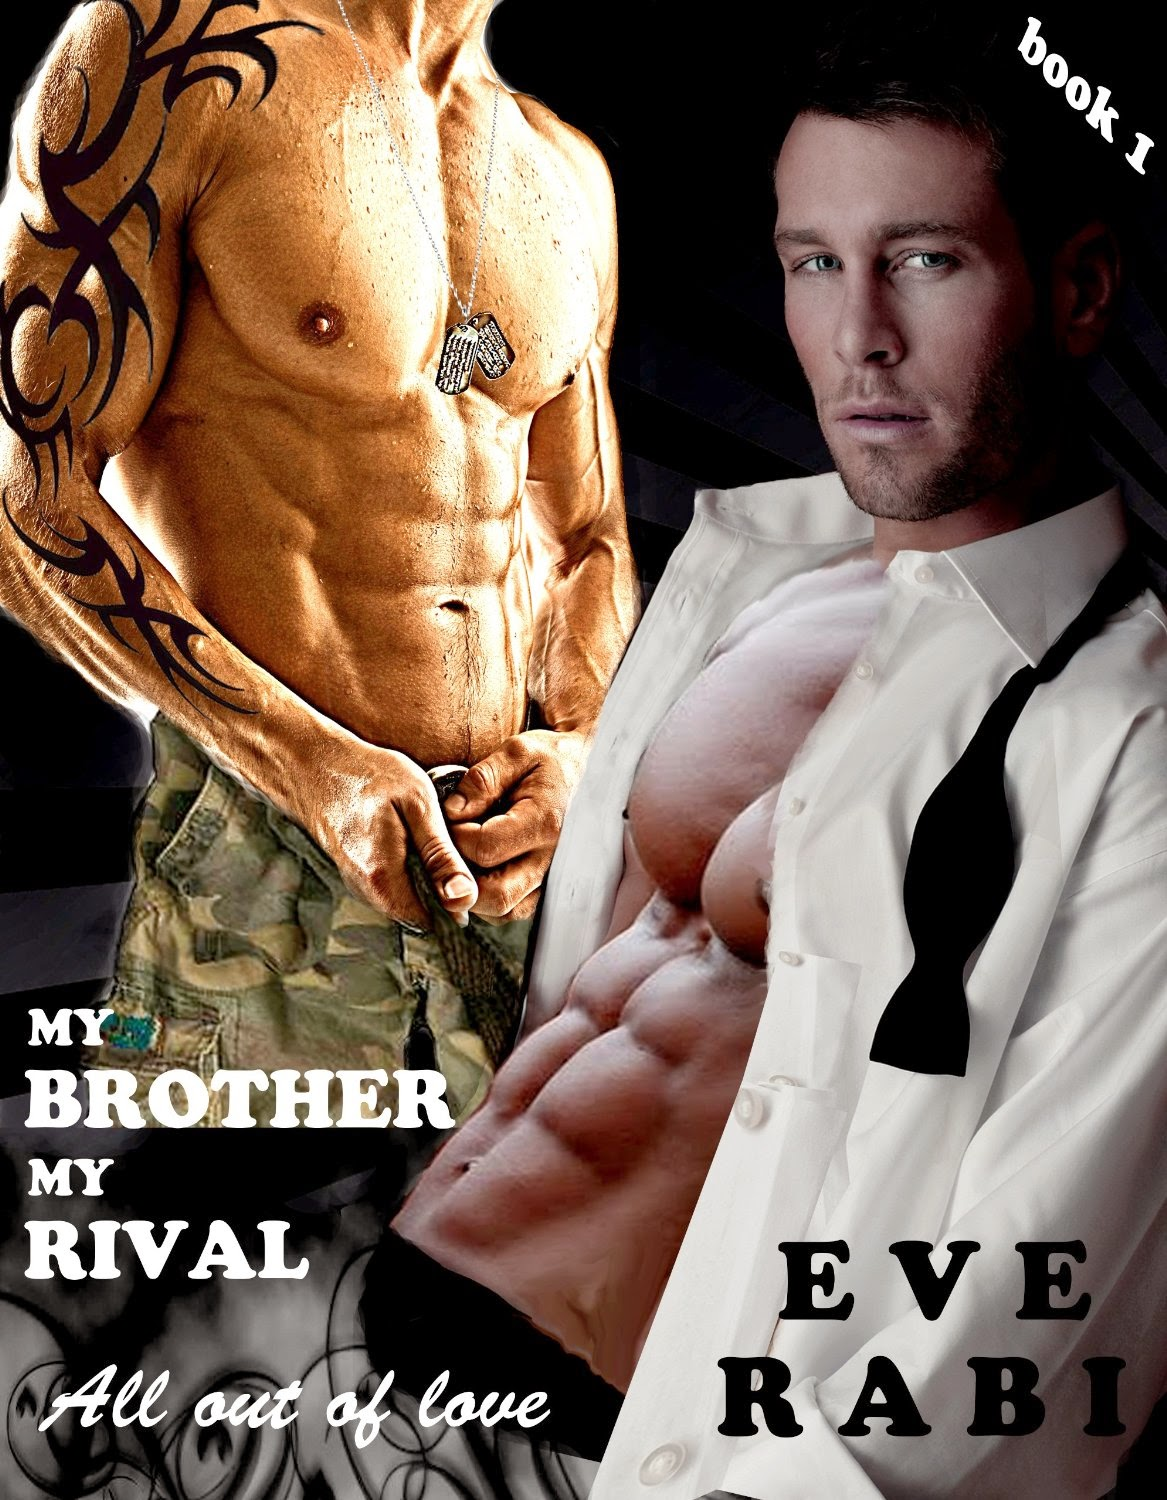 http://www.amazon.com/MY-BROTHER-RIVAL-Love-ebook/dp/B00EVD47YC